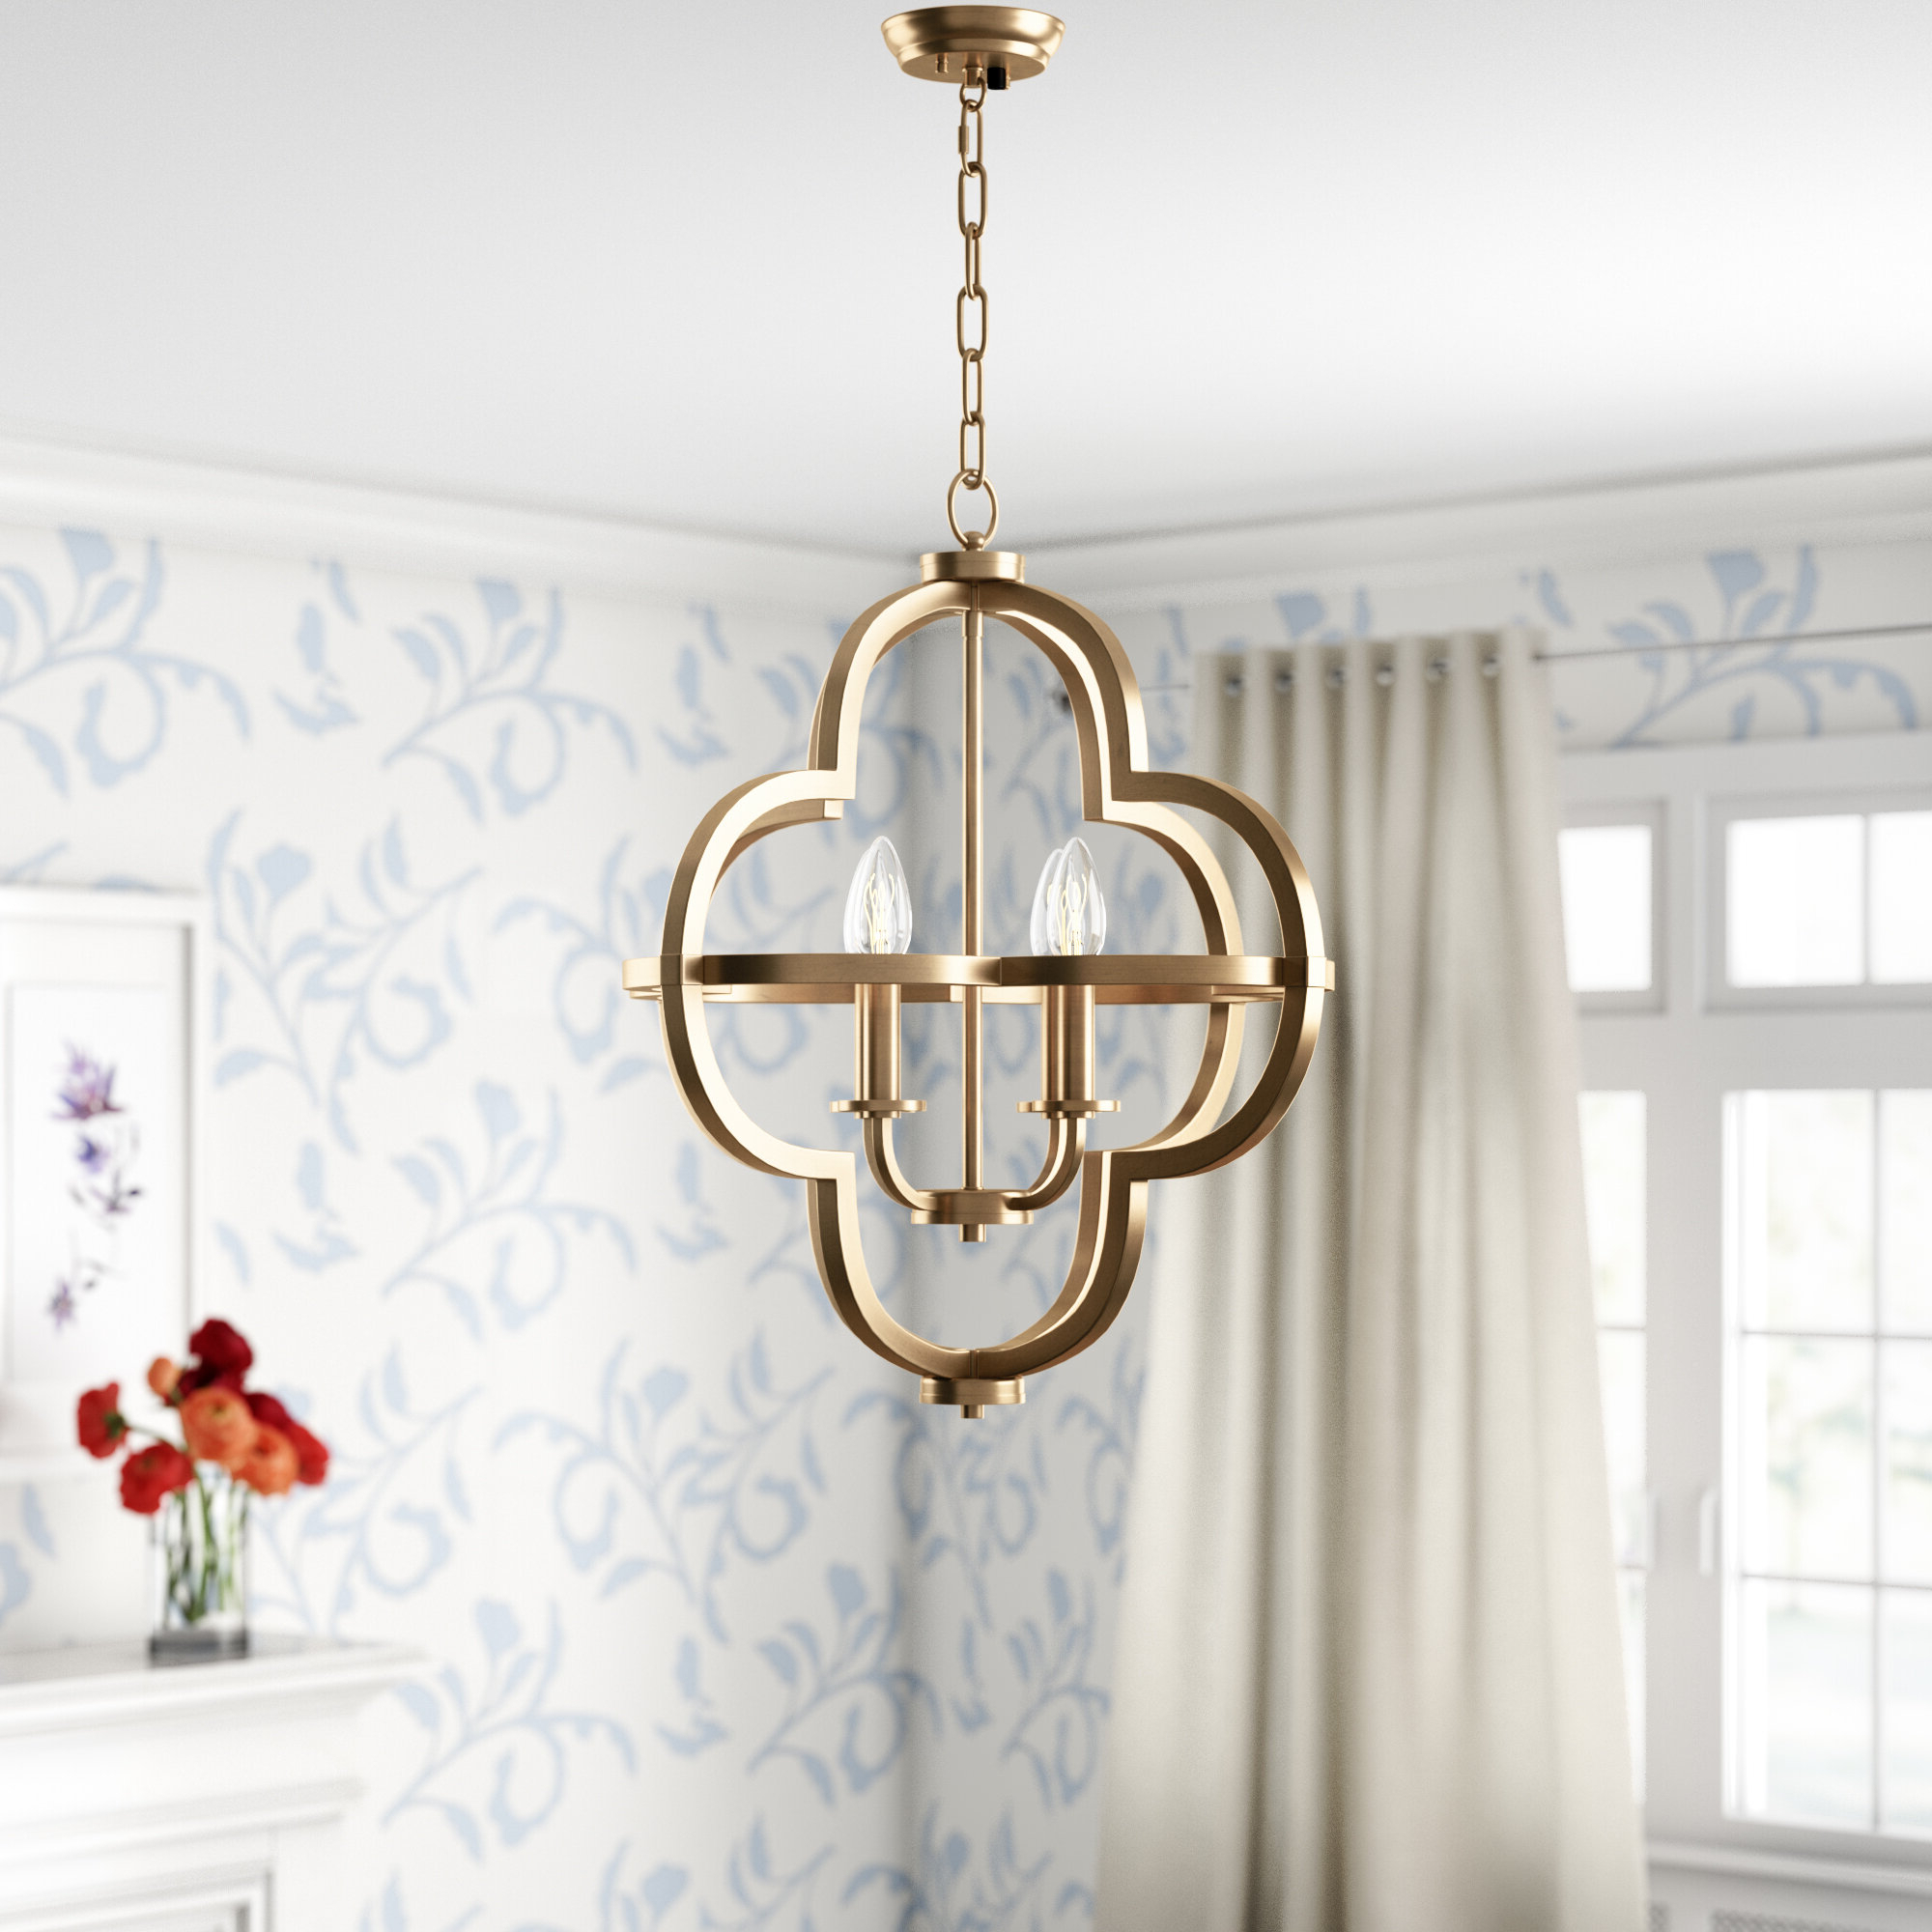 Latest Middleton 4 Light Single Geometric Pendant Regarding Reidar 4 Light Geometric Chandeliers (View 7 of 25)